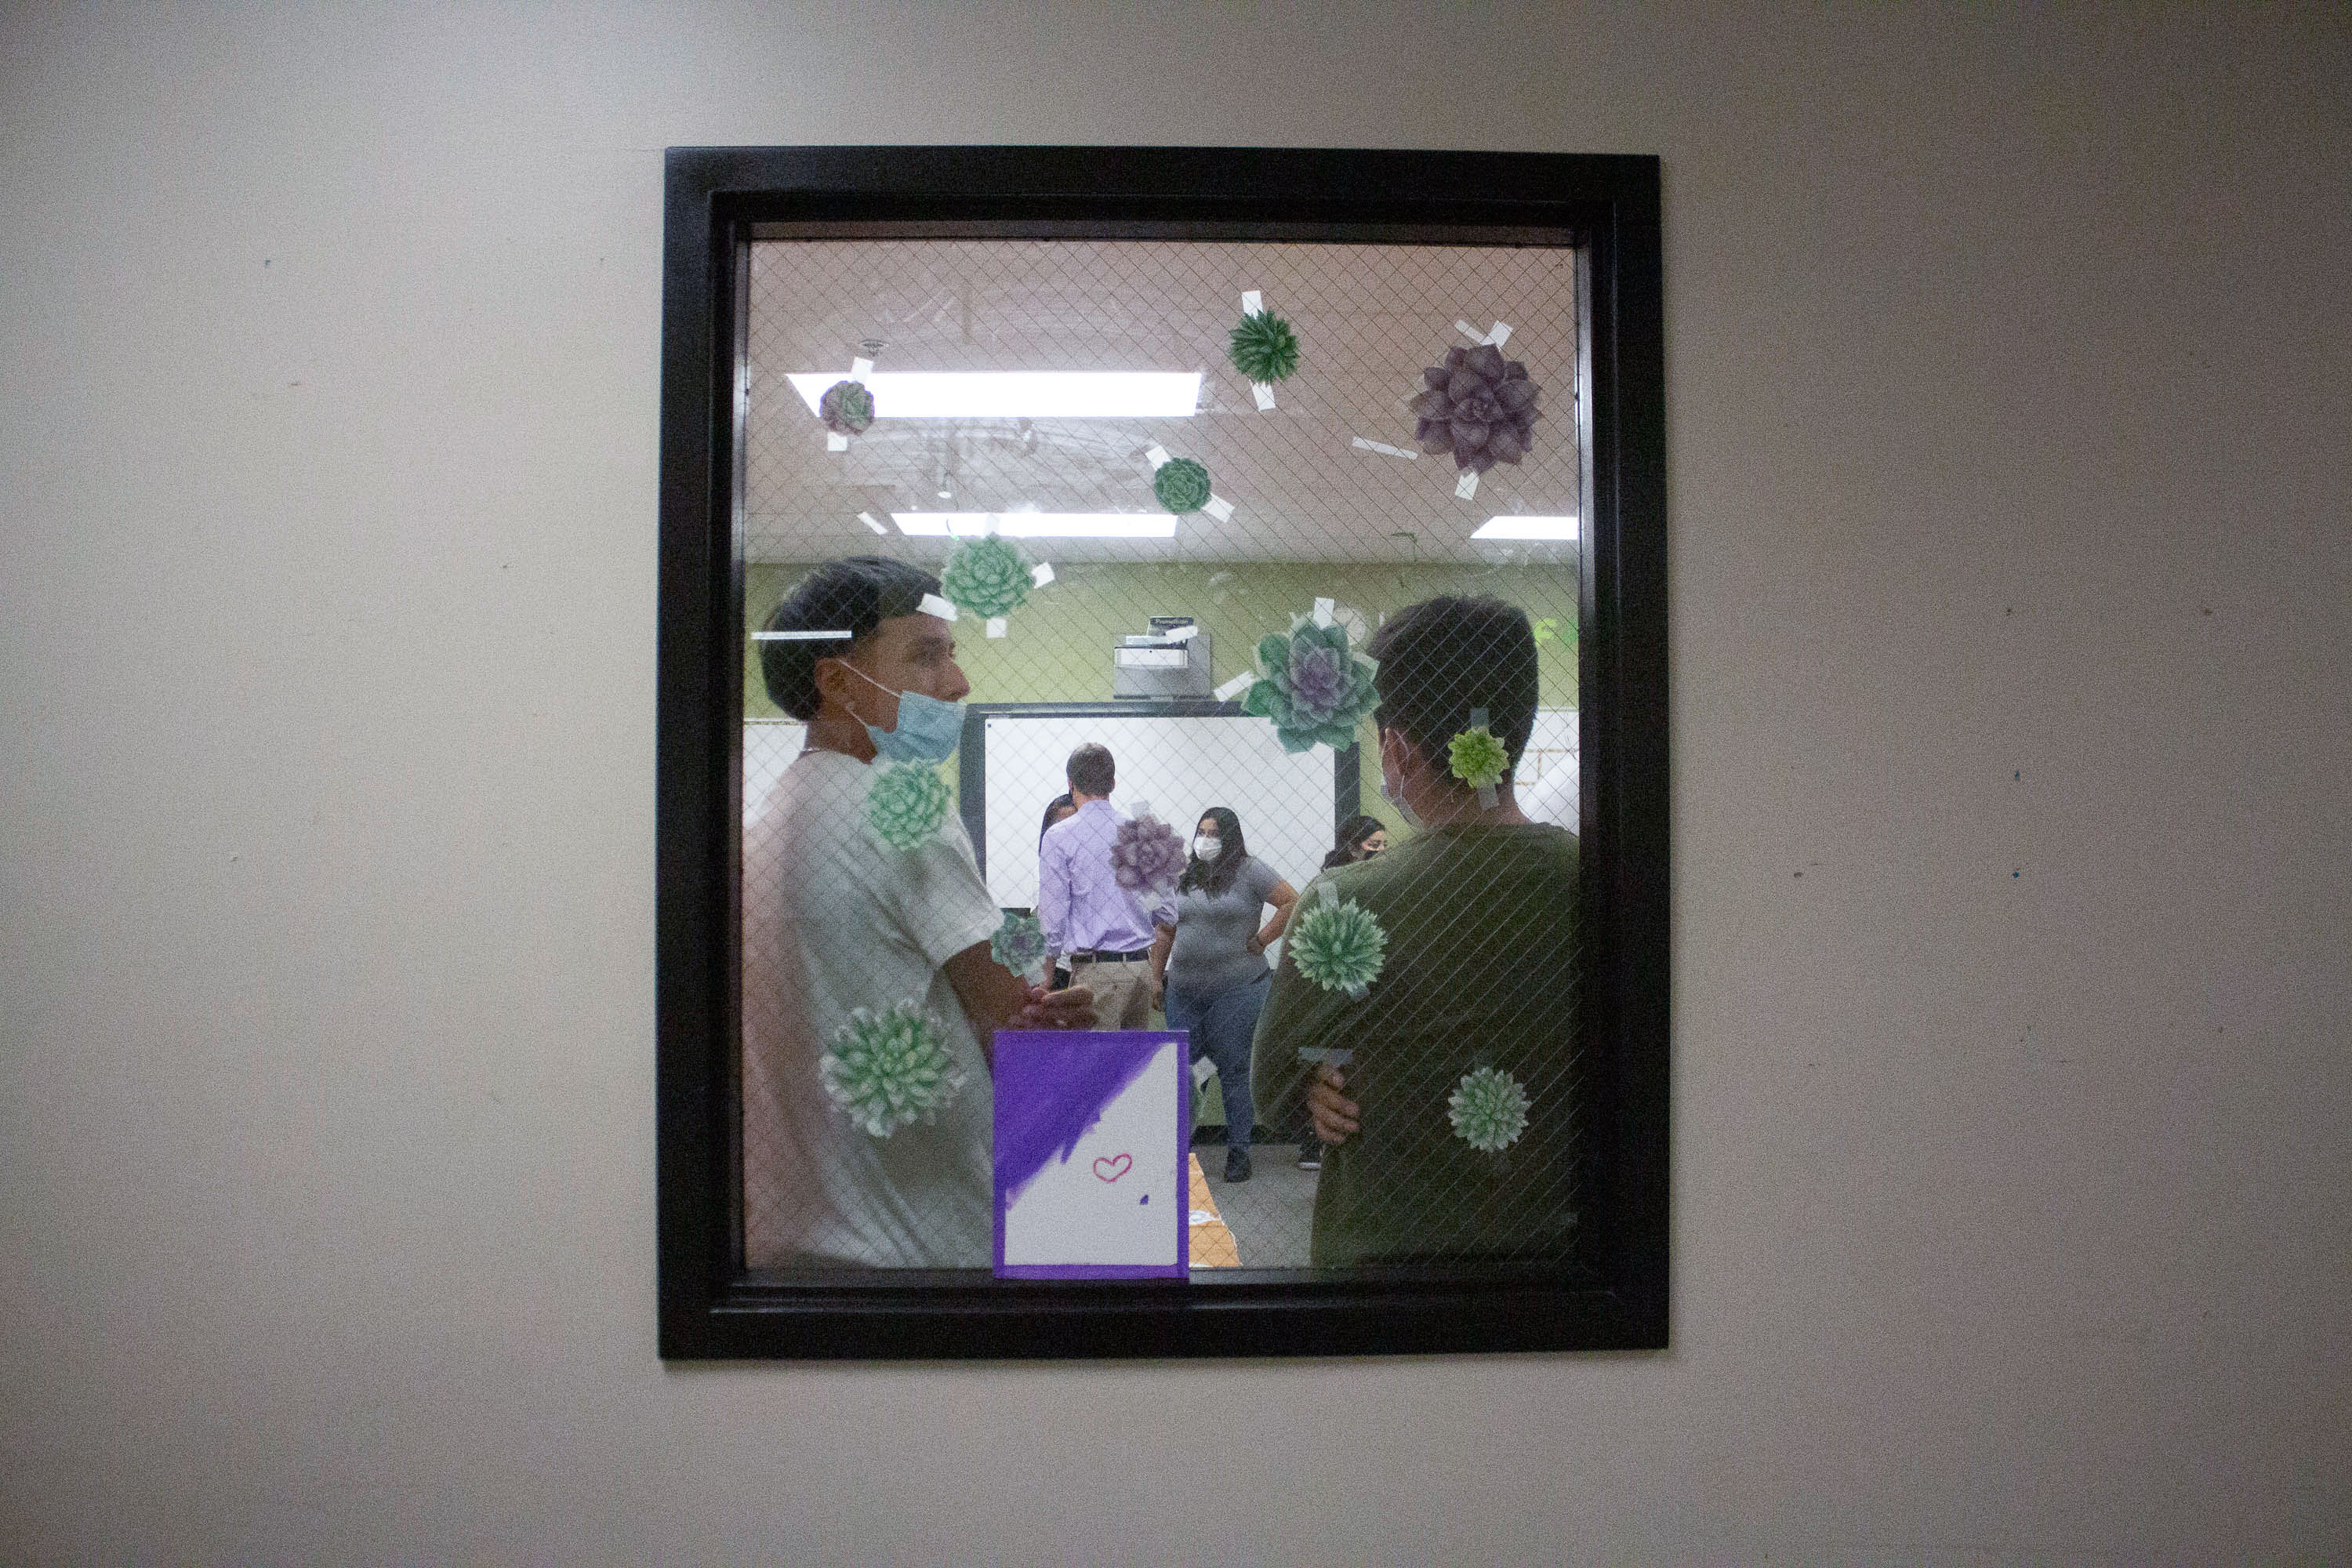 Two students are framed by a window decorated with decals. One student wears a blue face mask.